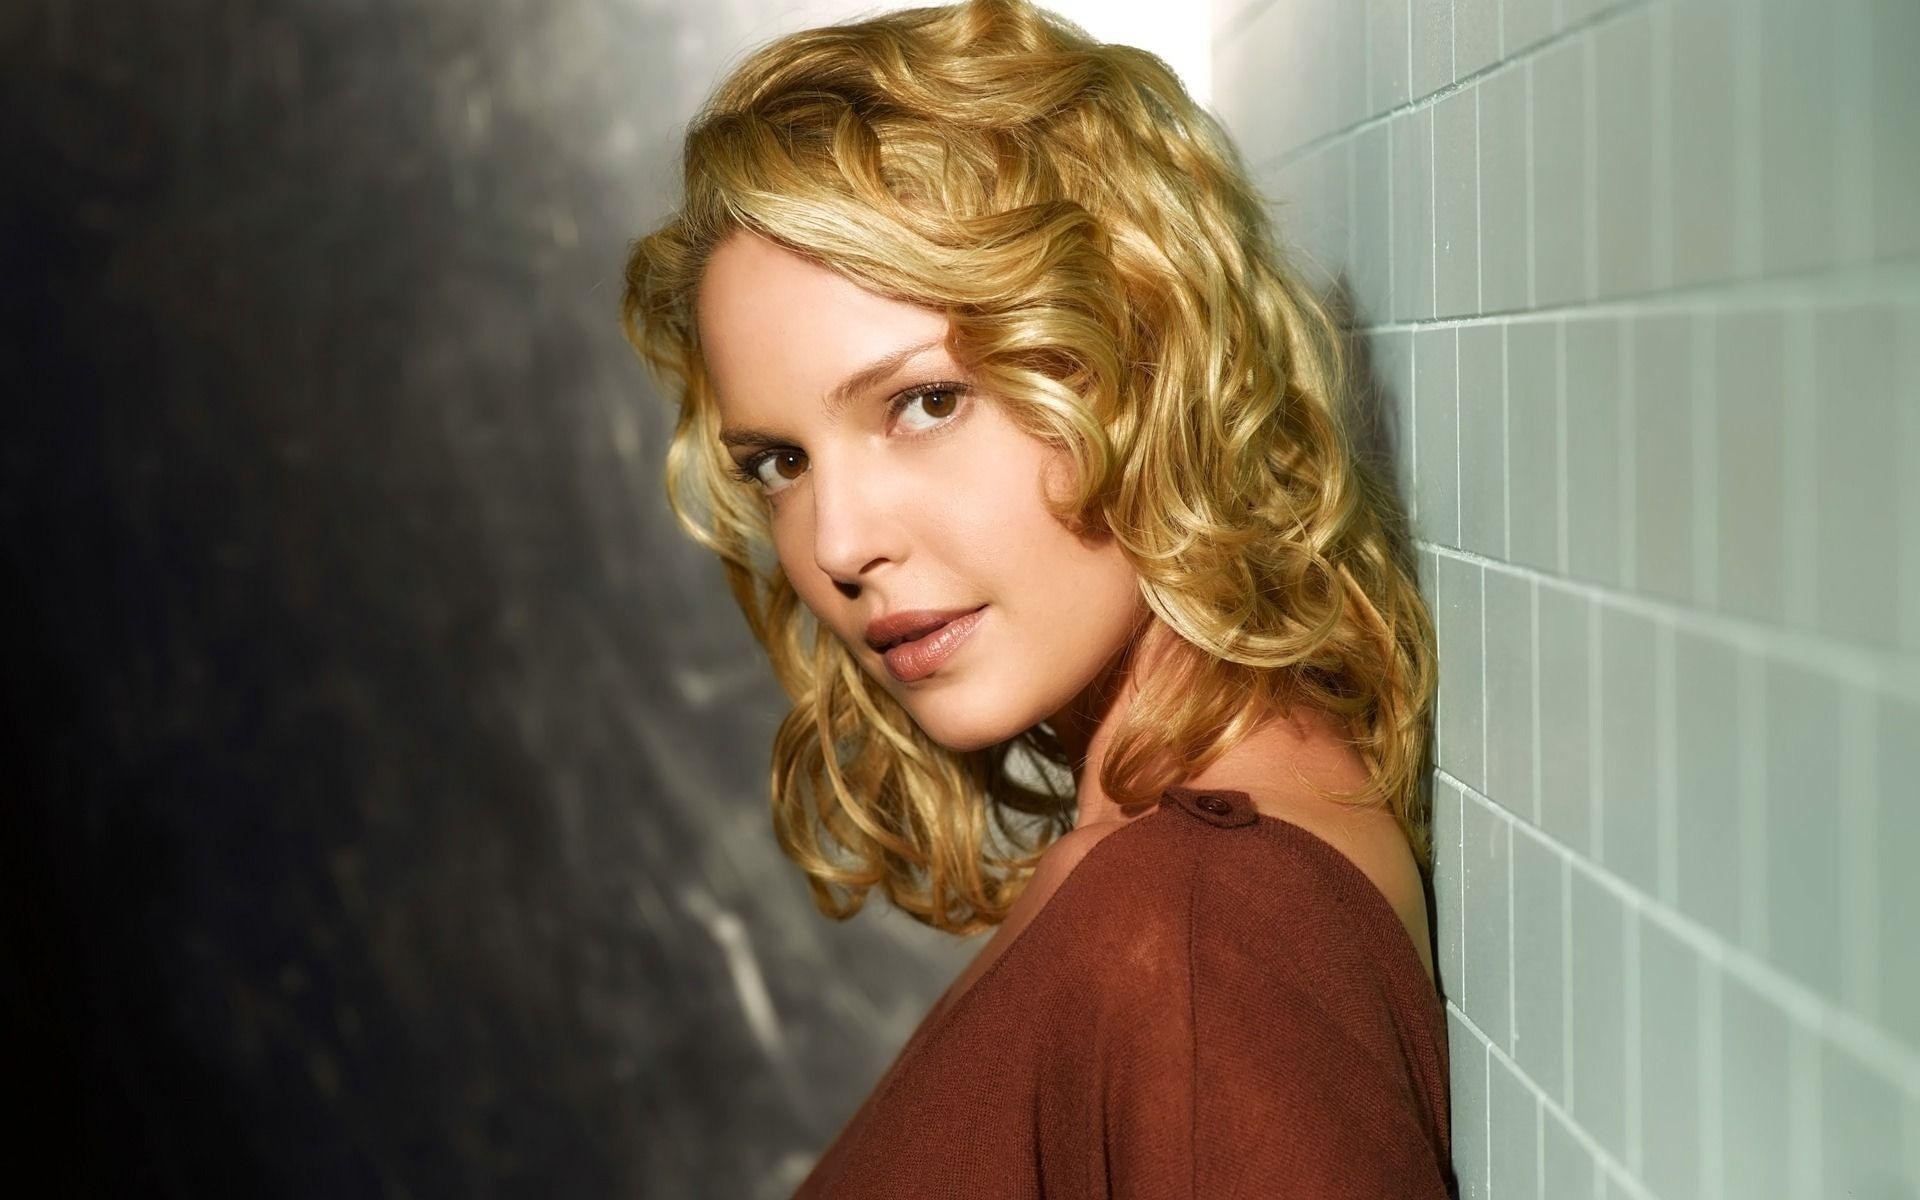 Katherine Heigl Wallpapers High Resolution and Quality Download